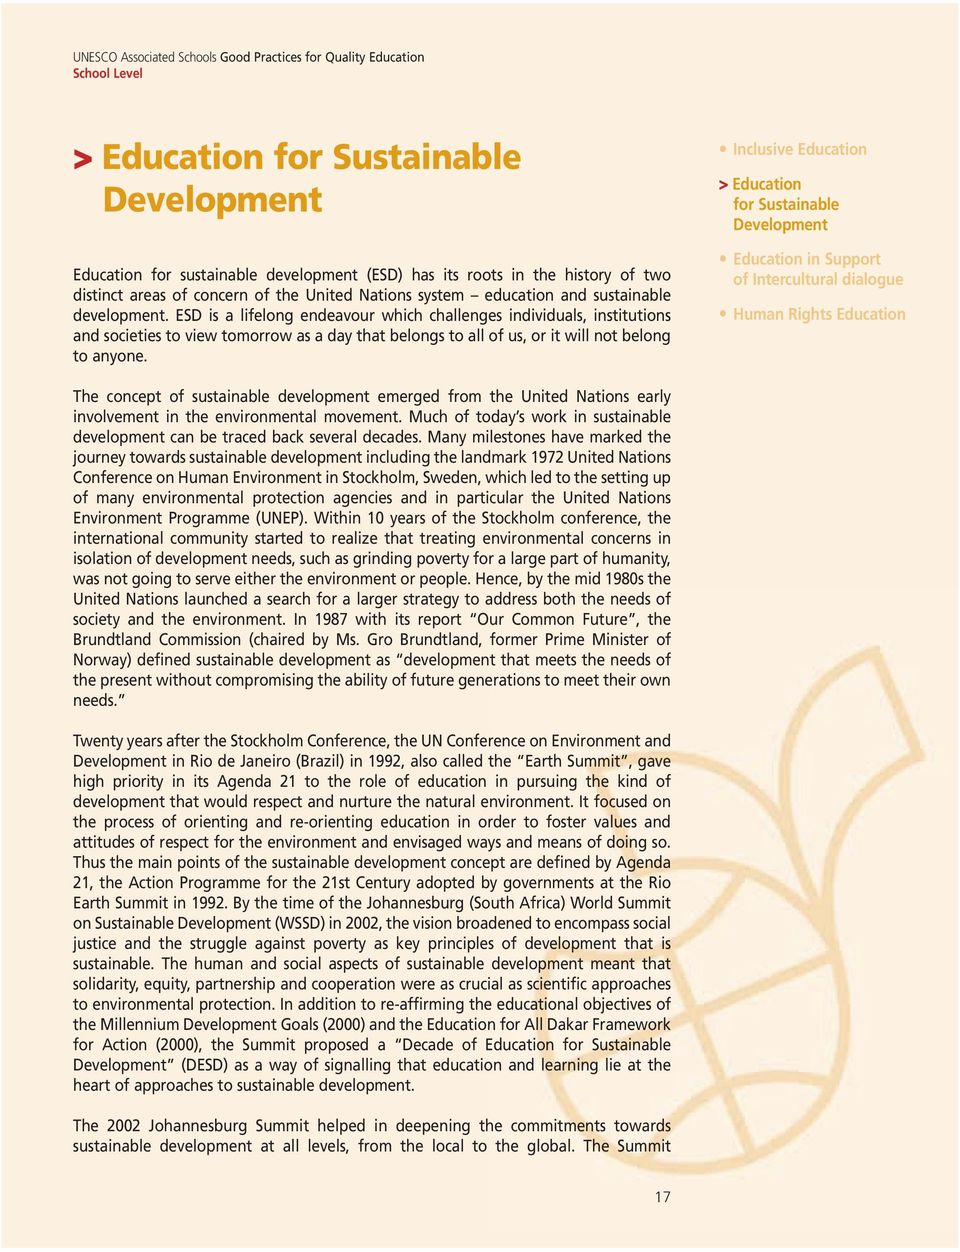 Inclusive Education > Education for Sustainable Development Education in Support of Intercultural dialogue Human Rights Education The concept of sustainable development emerged from the United